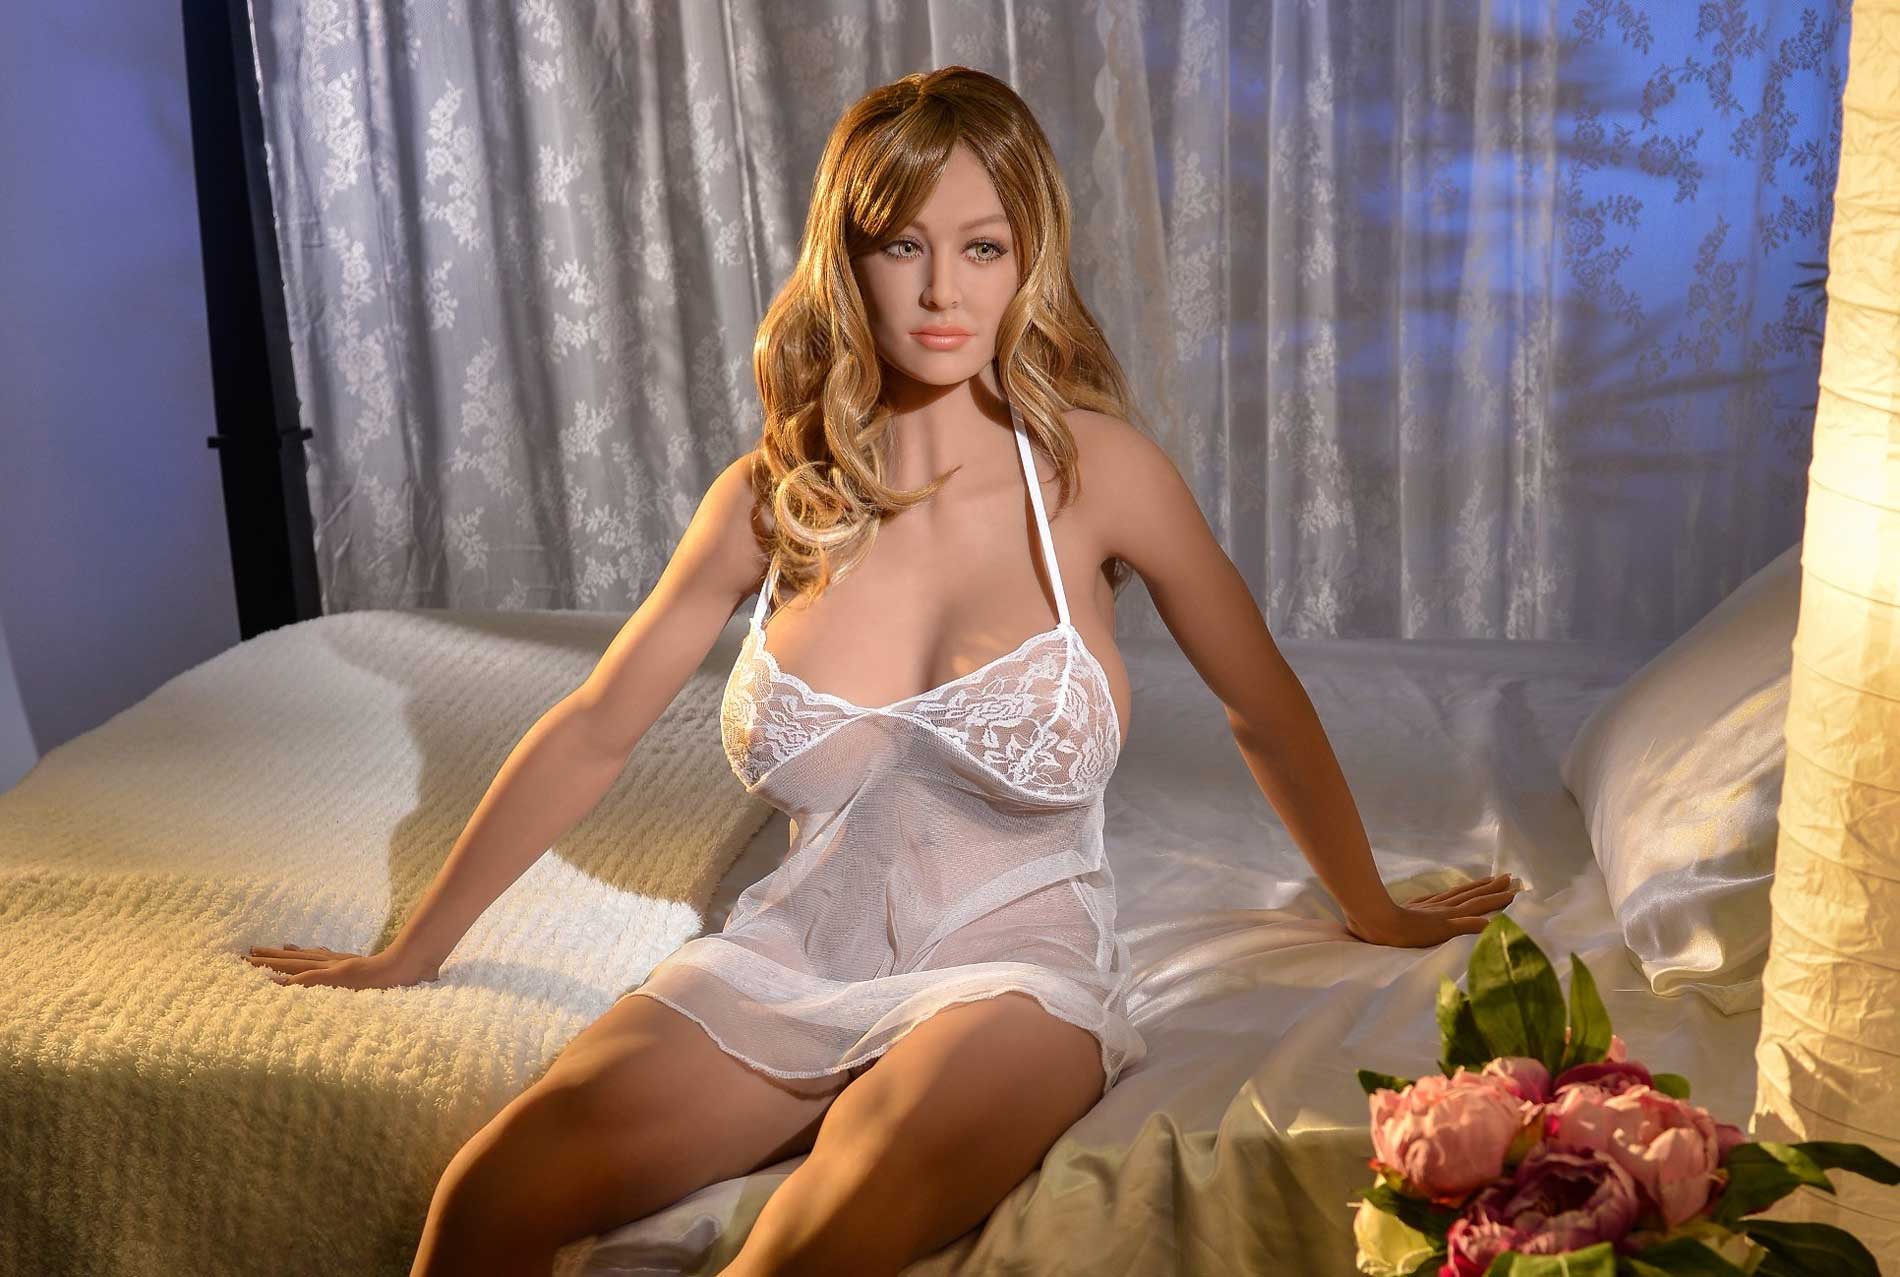 Sex Doll Brothel Brings Both Controversy & Excitement